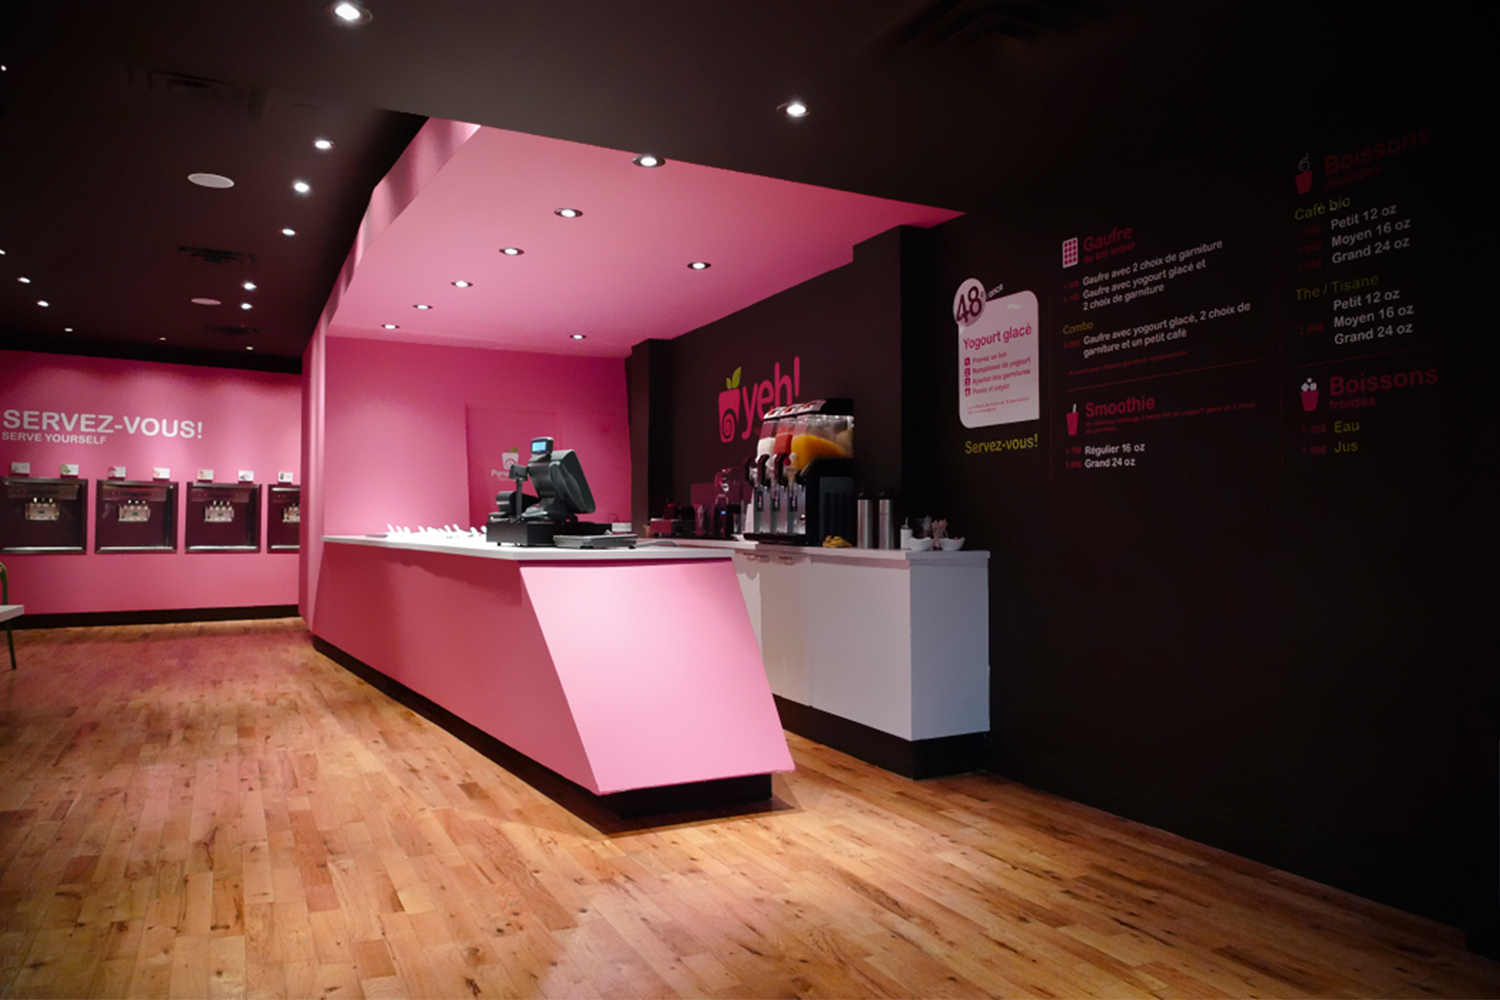 View of the shop with its hardwood floor. The volume of the checkout counter with its angles and its pink color contrasts on the black walls. We see in the distance the built-in vending machines